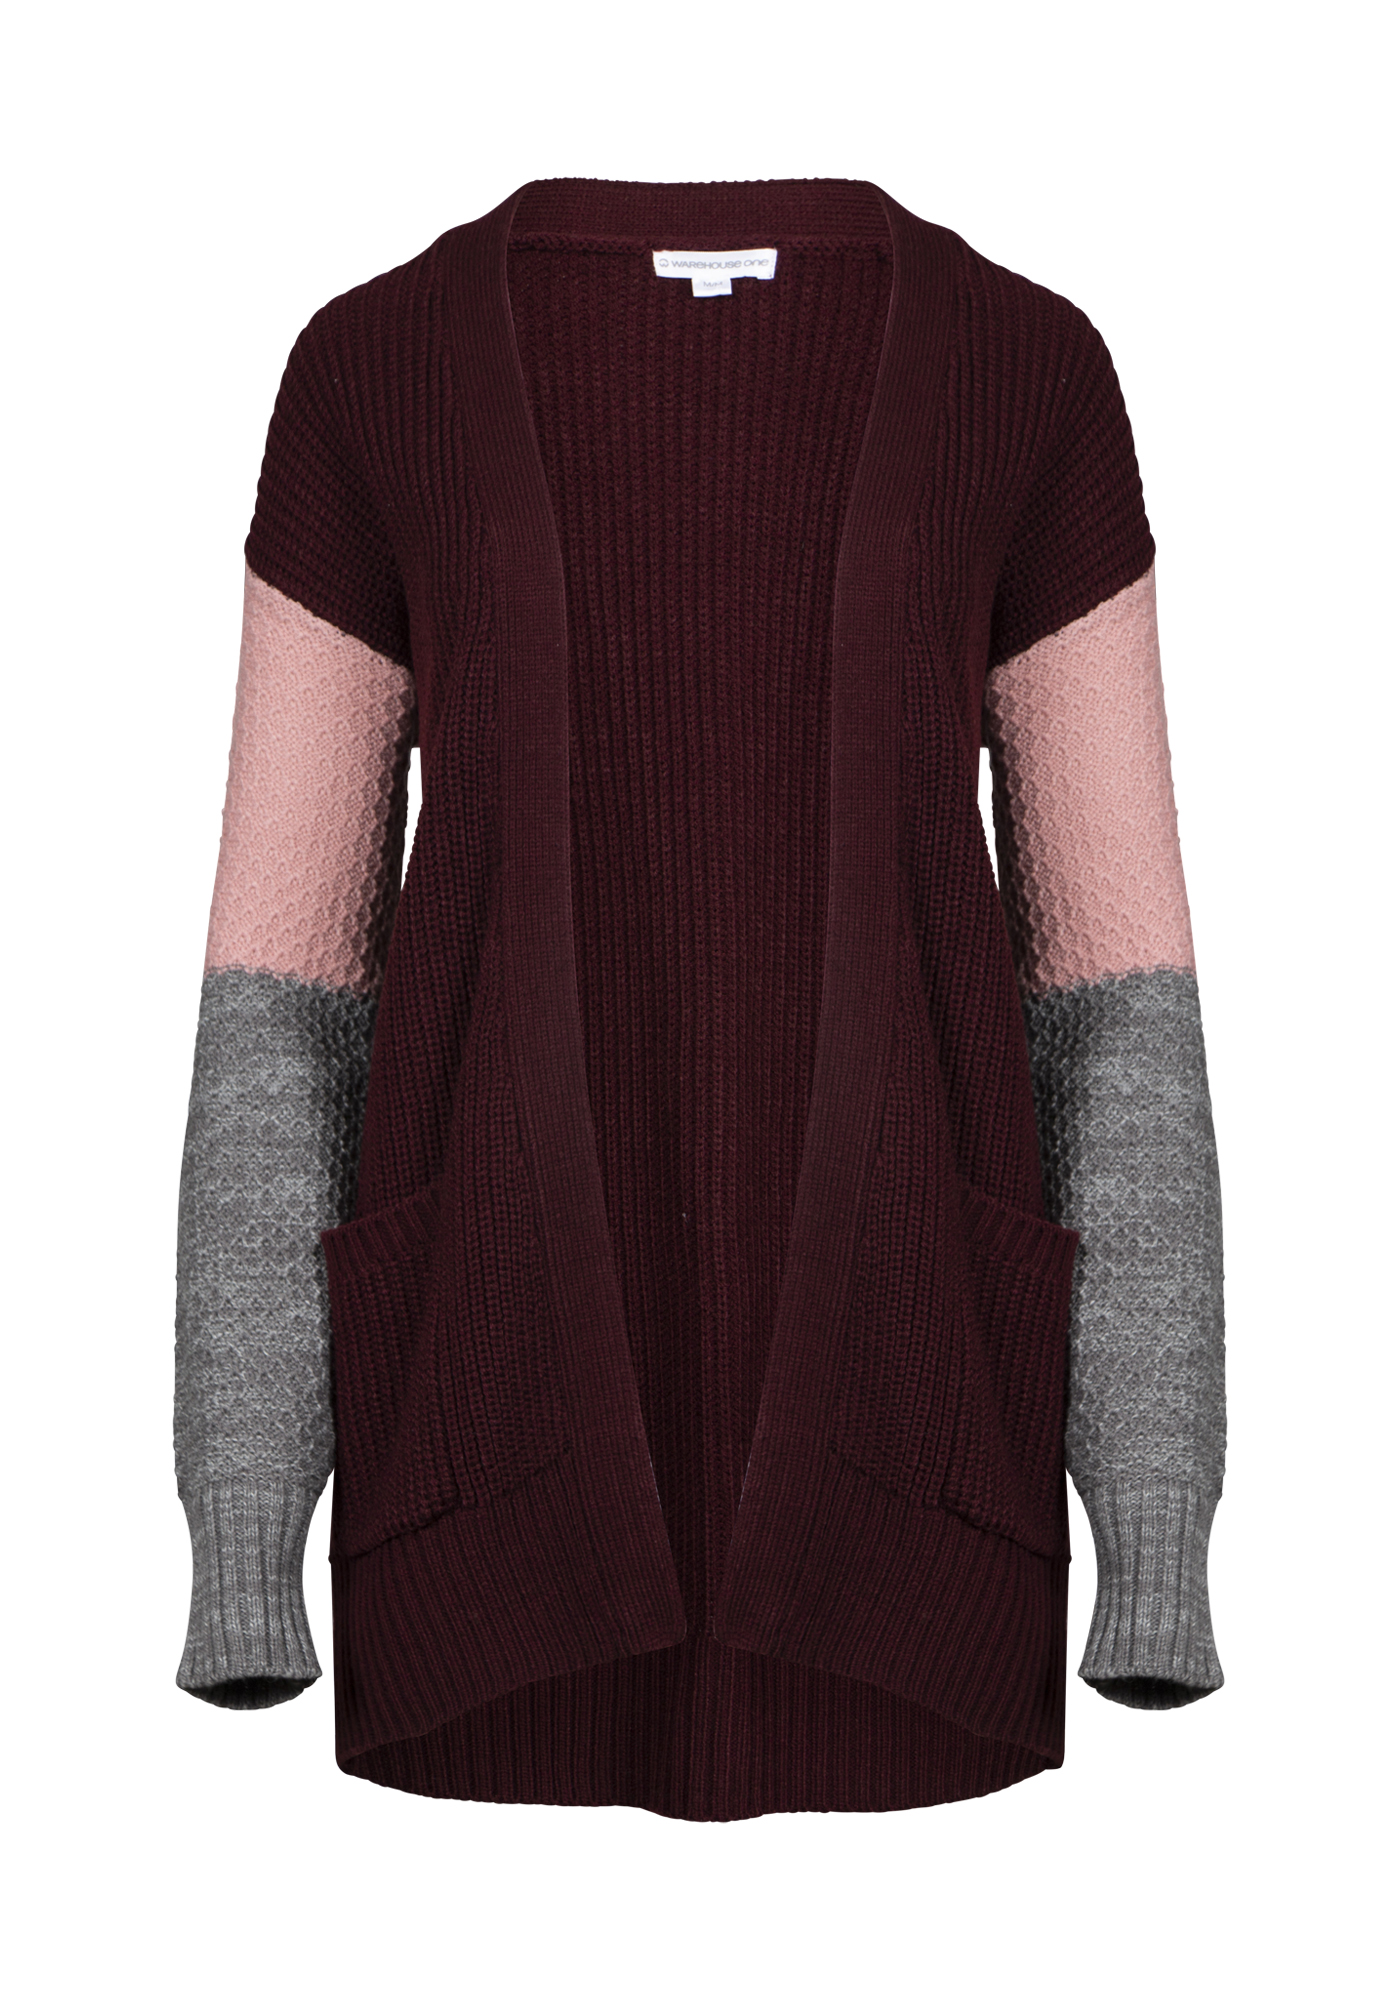 Women's Chunky Knit Colour Block Cardigan, BURGUNDY/PINK, hi-res